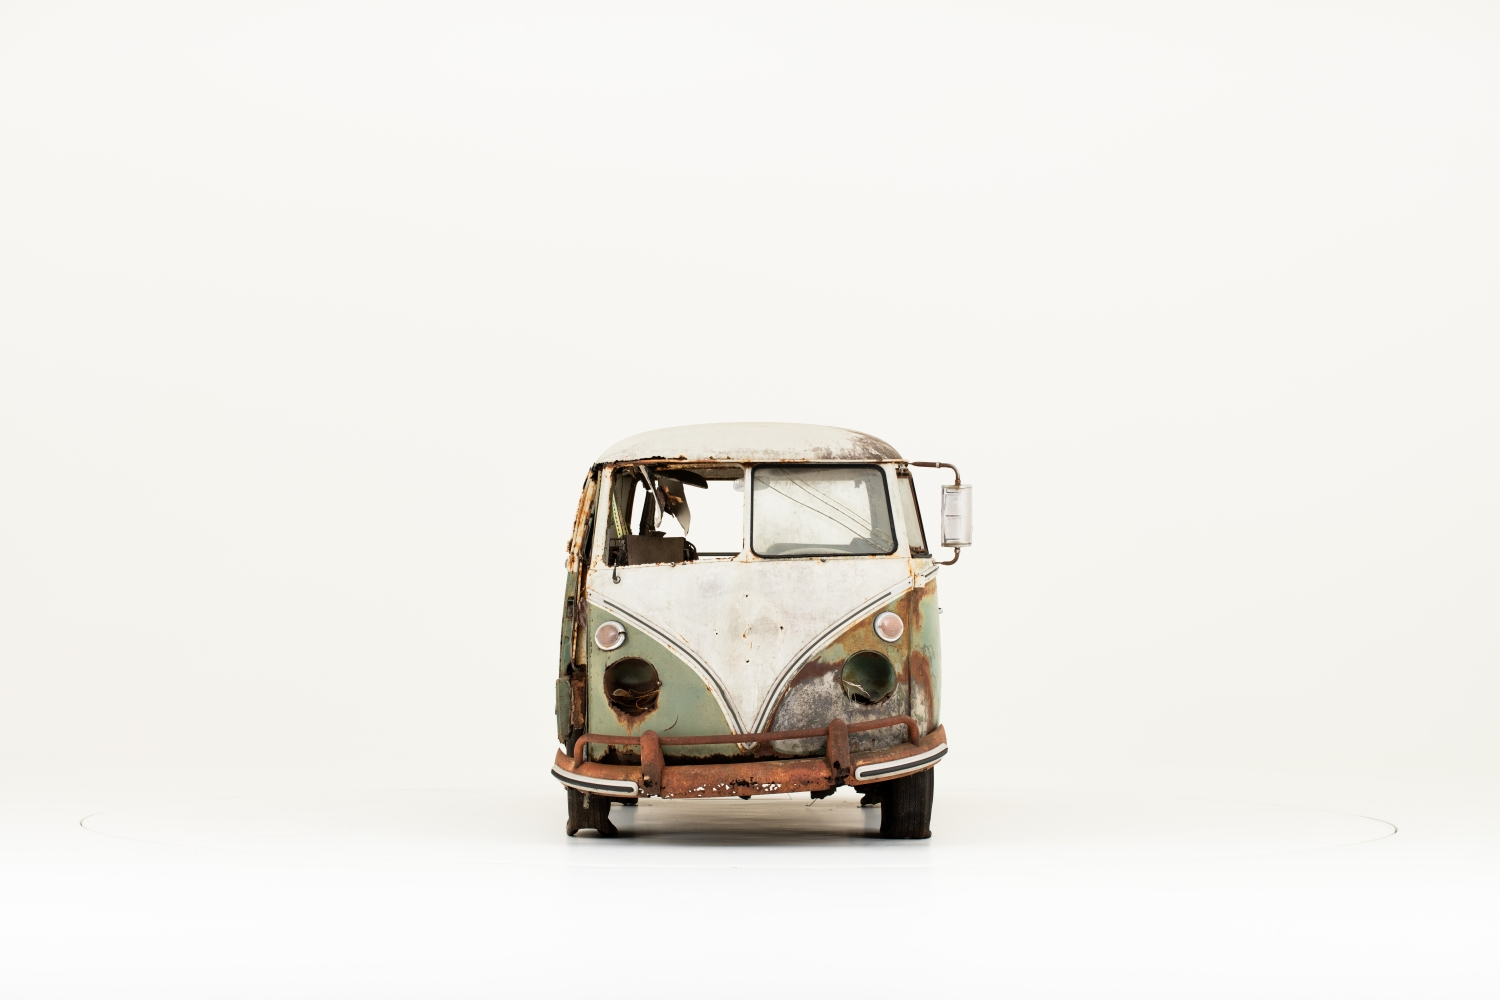 Jenkins_Bus_1966_Volkswagen_Type_2-Small-10205